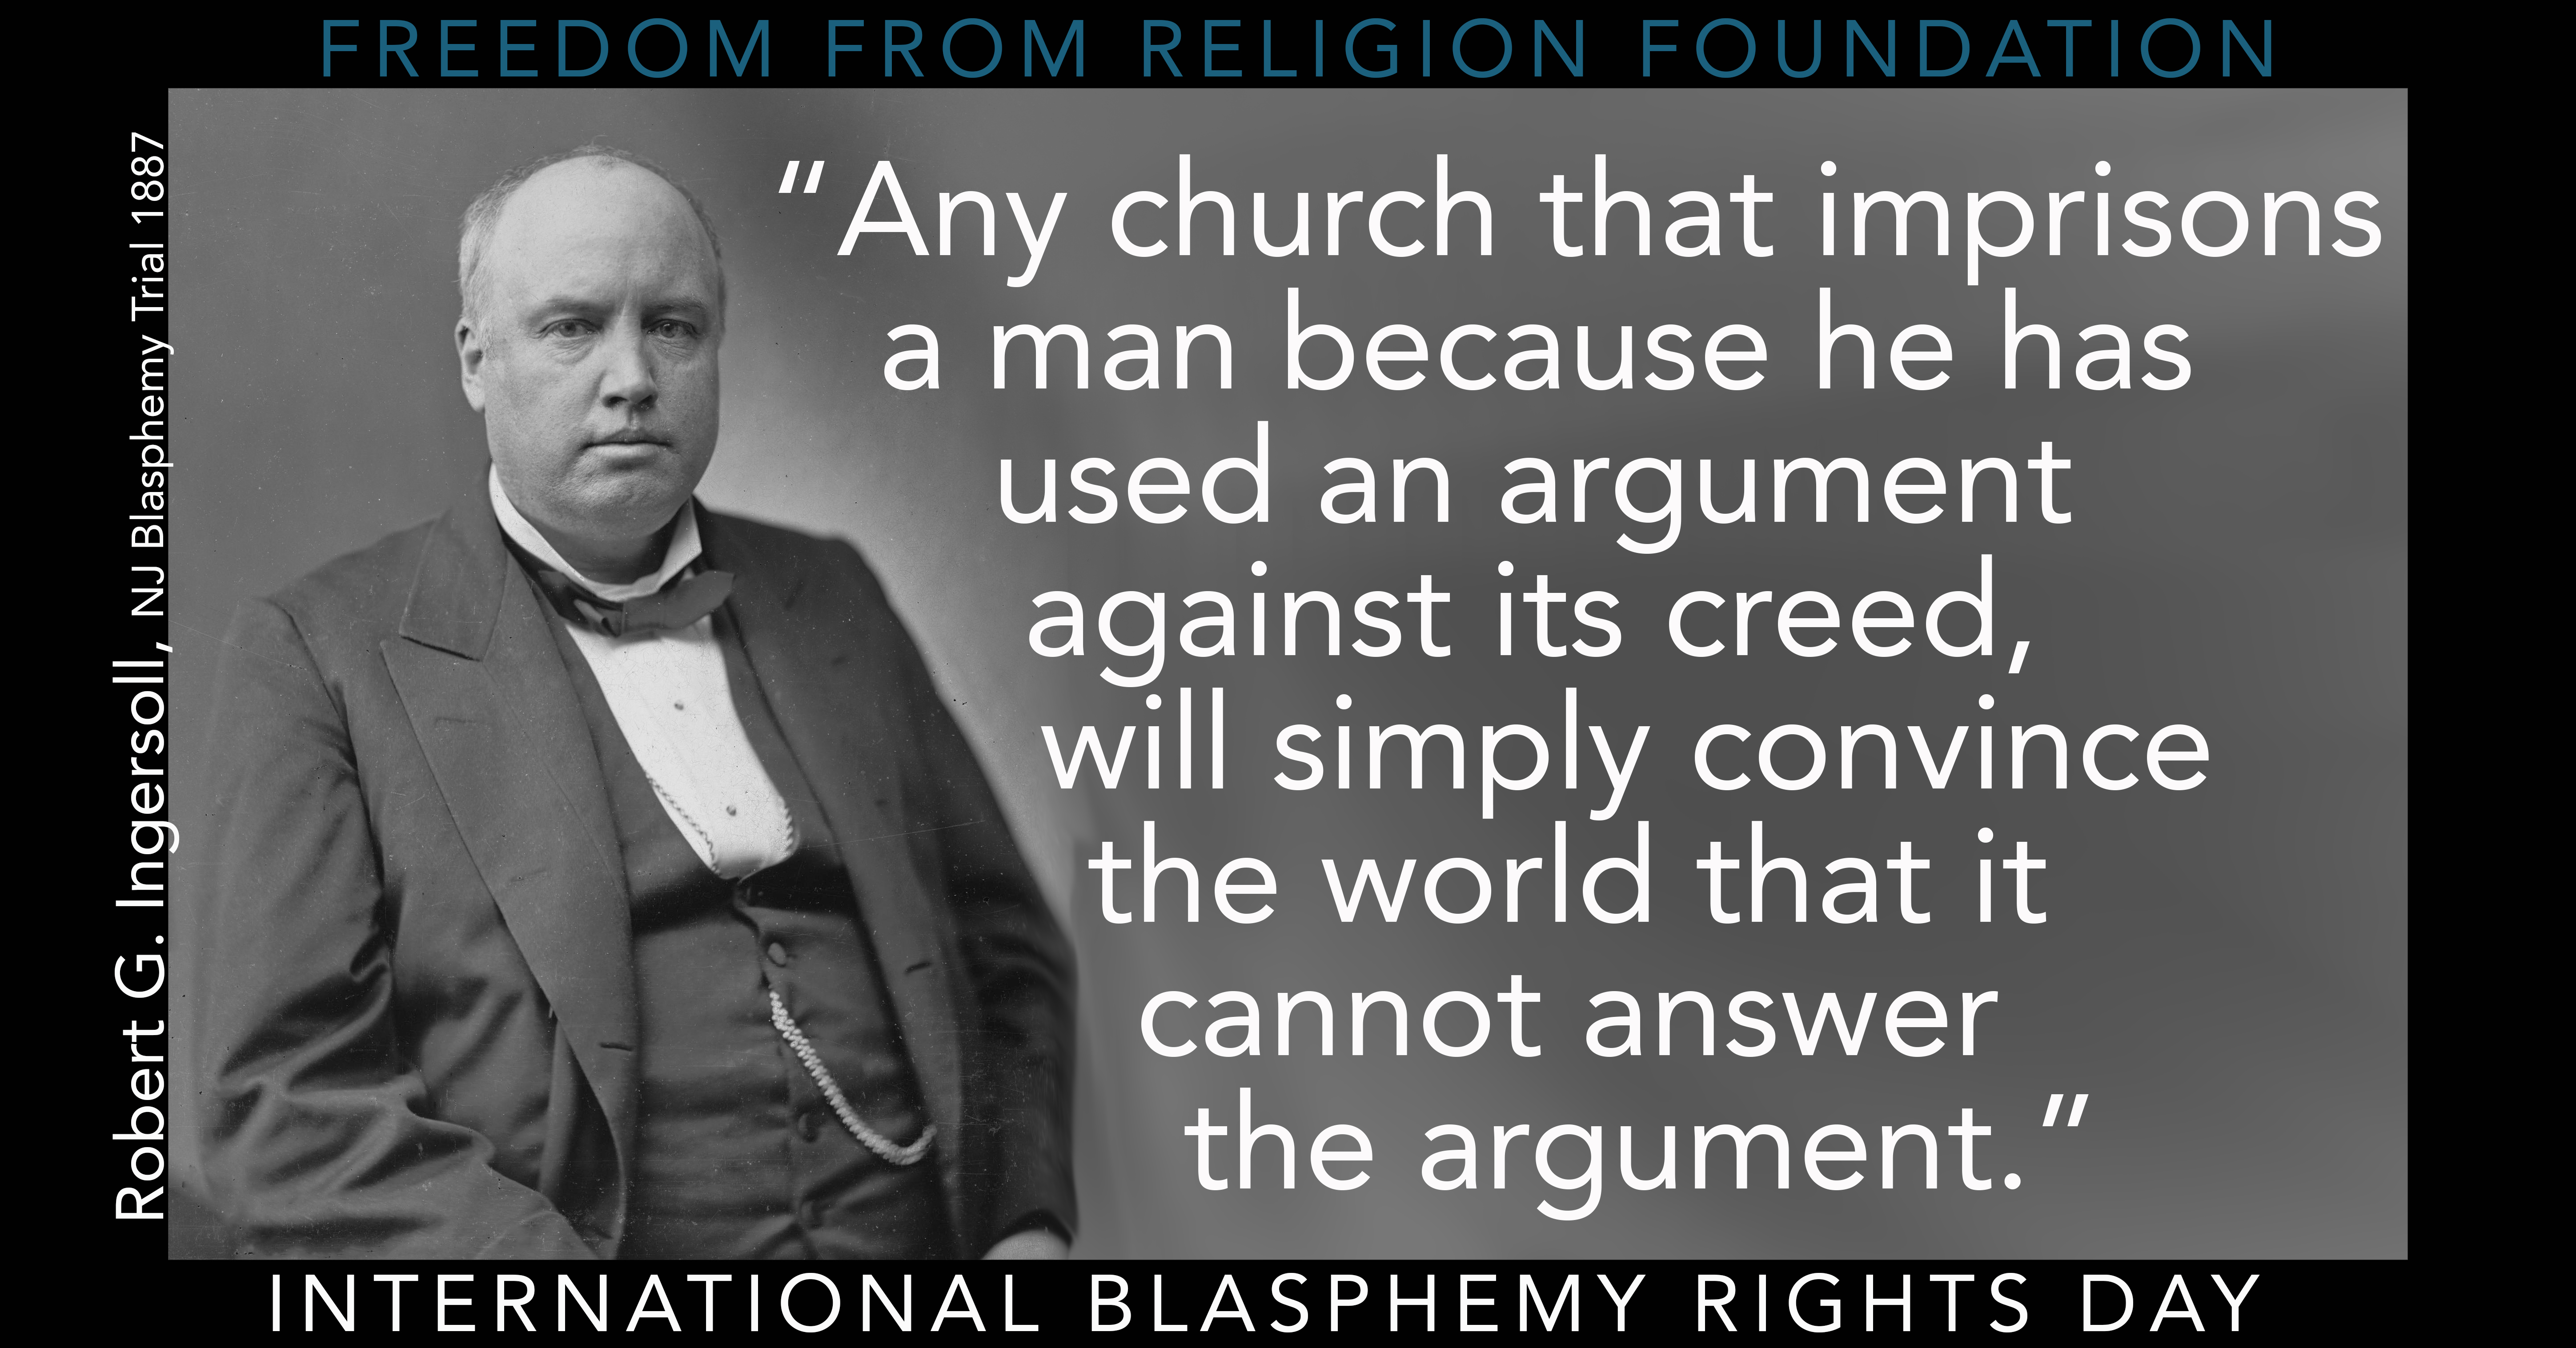 Robert Ingersoll, The Great Agnostic. One of his biographers, Susan Jacoby, will be speaking at FFRF's convention.